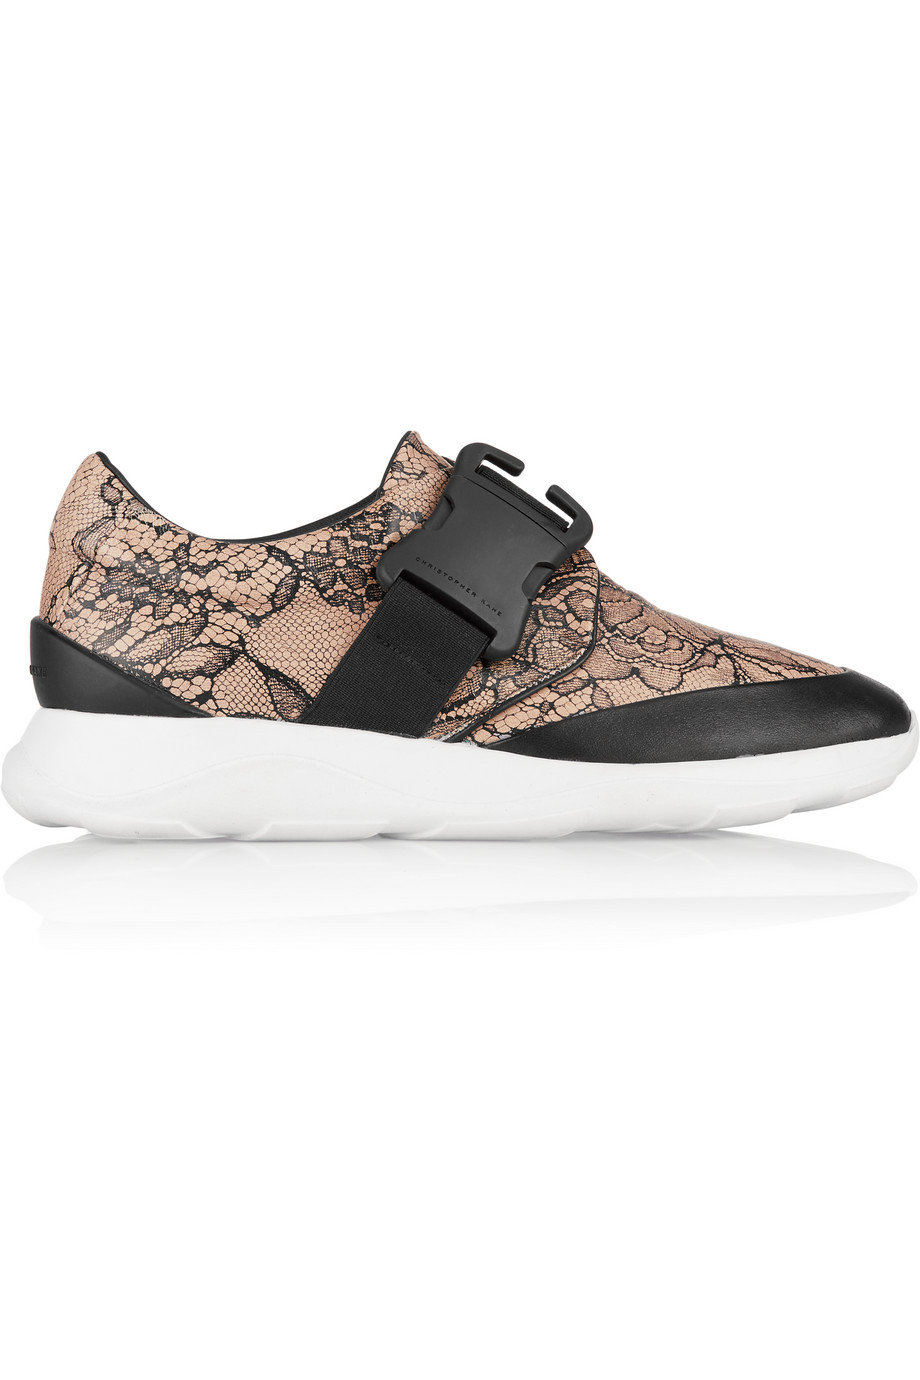 Lace-Print Leather Sneakers, Christopher Kane, Beige, Women's US Size: 8.5, Size: 39